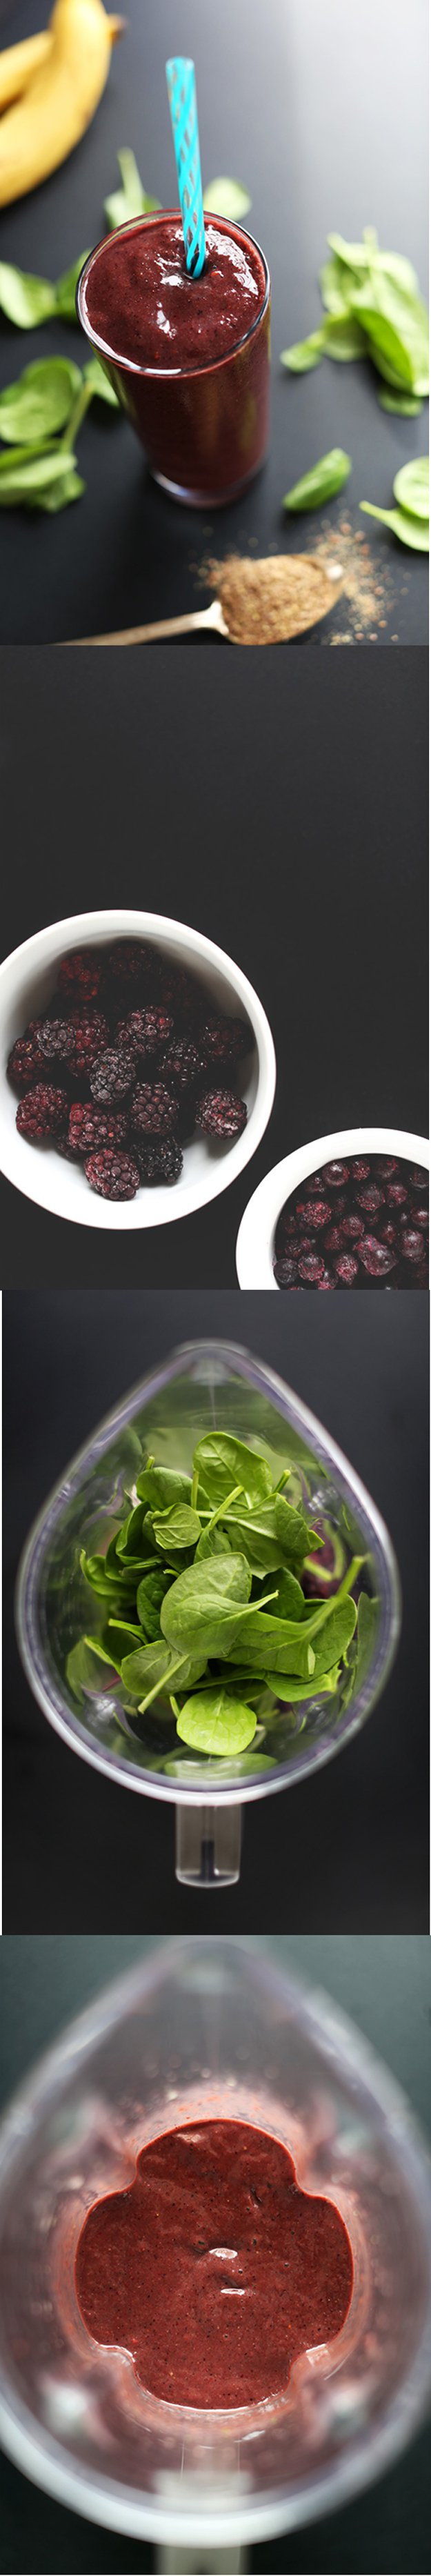 Easy DIY Detox Smoothie Diet |www.diyprojects.com/13-detox-smoothies-proven-to-boost-your-energy/